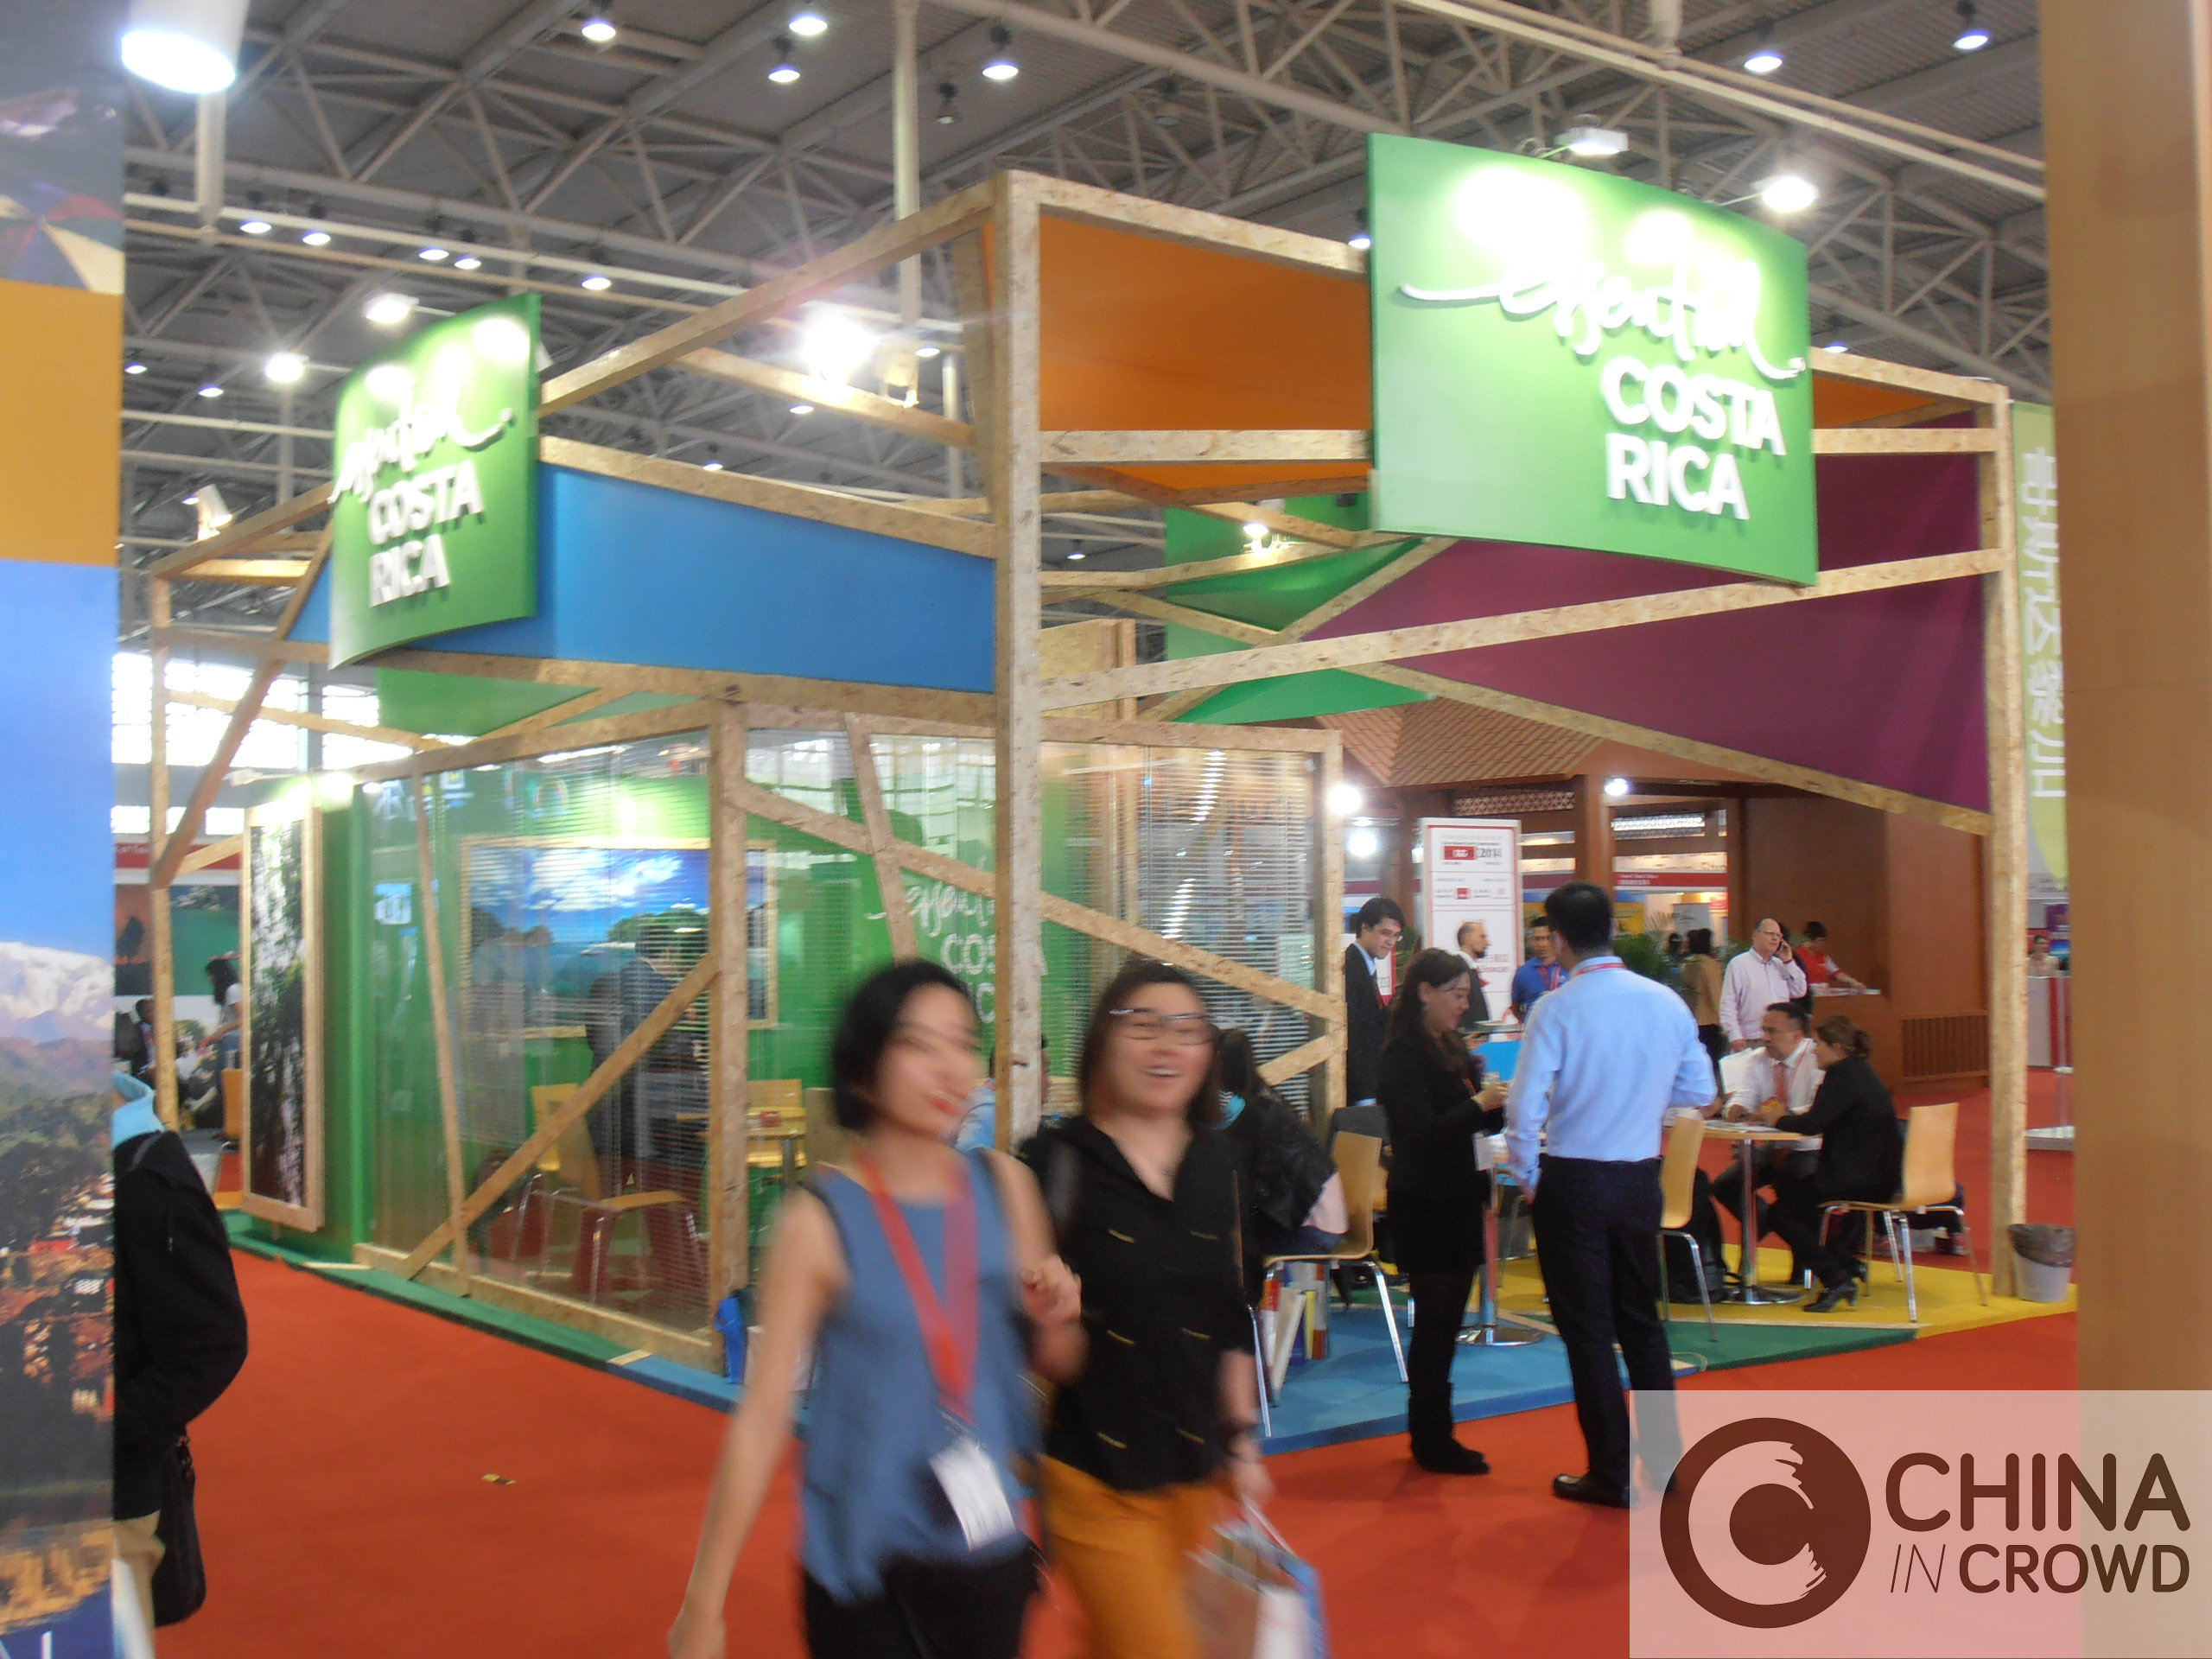 Stand Costa Rica_COTTM 2014_turismo chino_CHINA IN CROWD